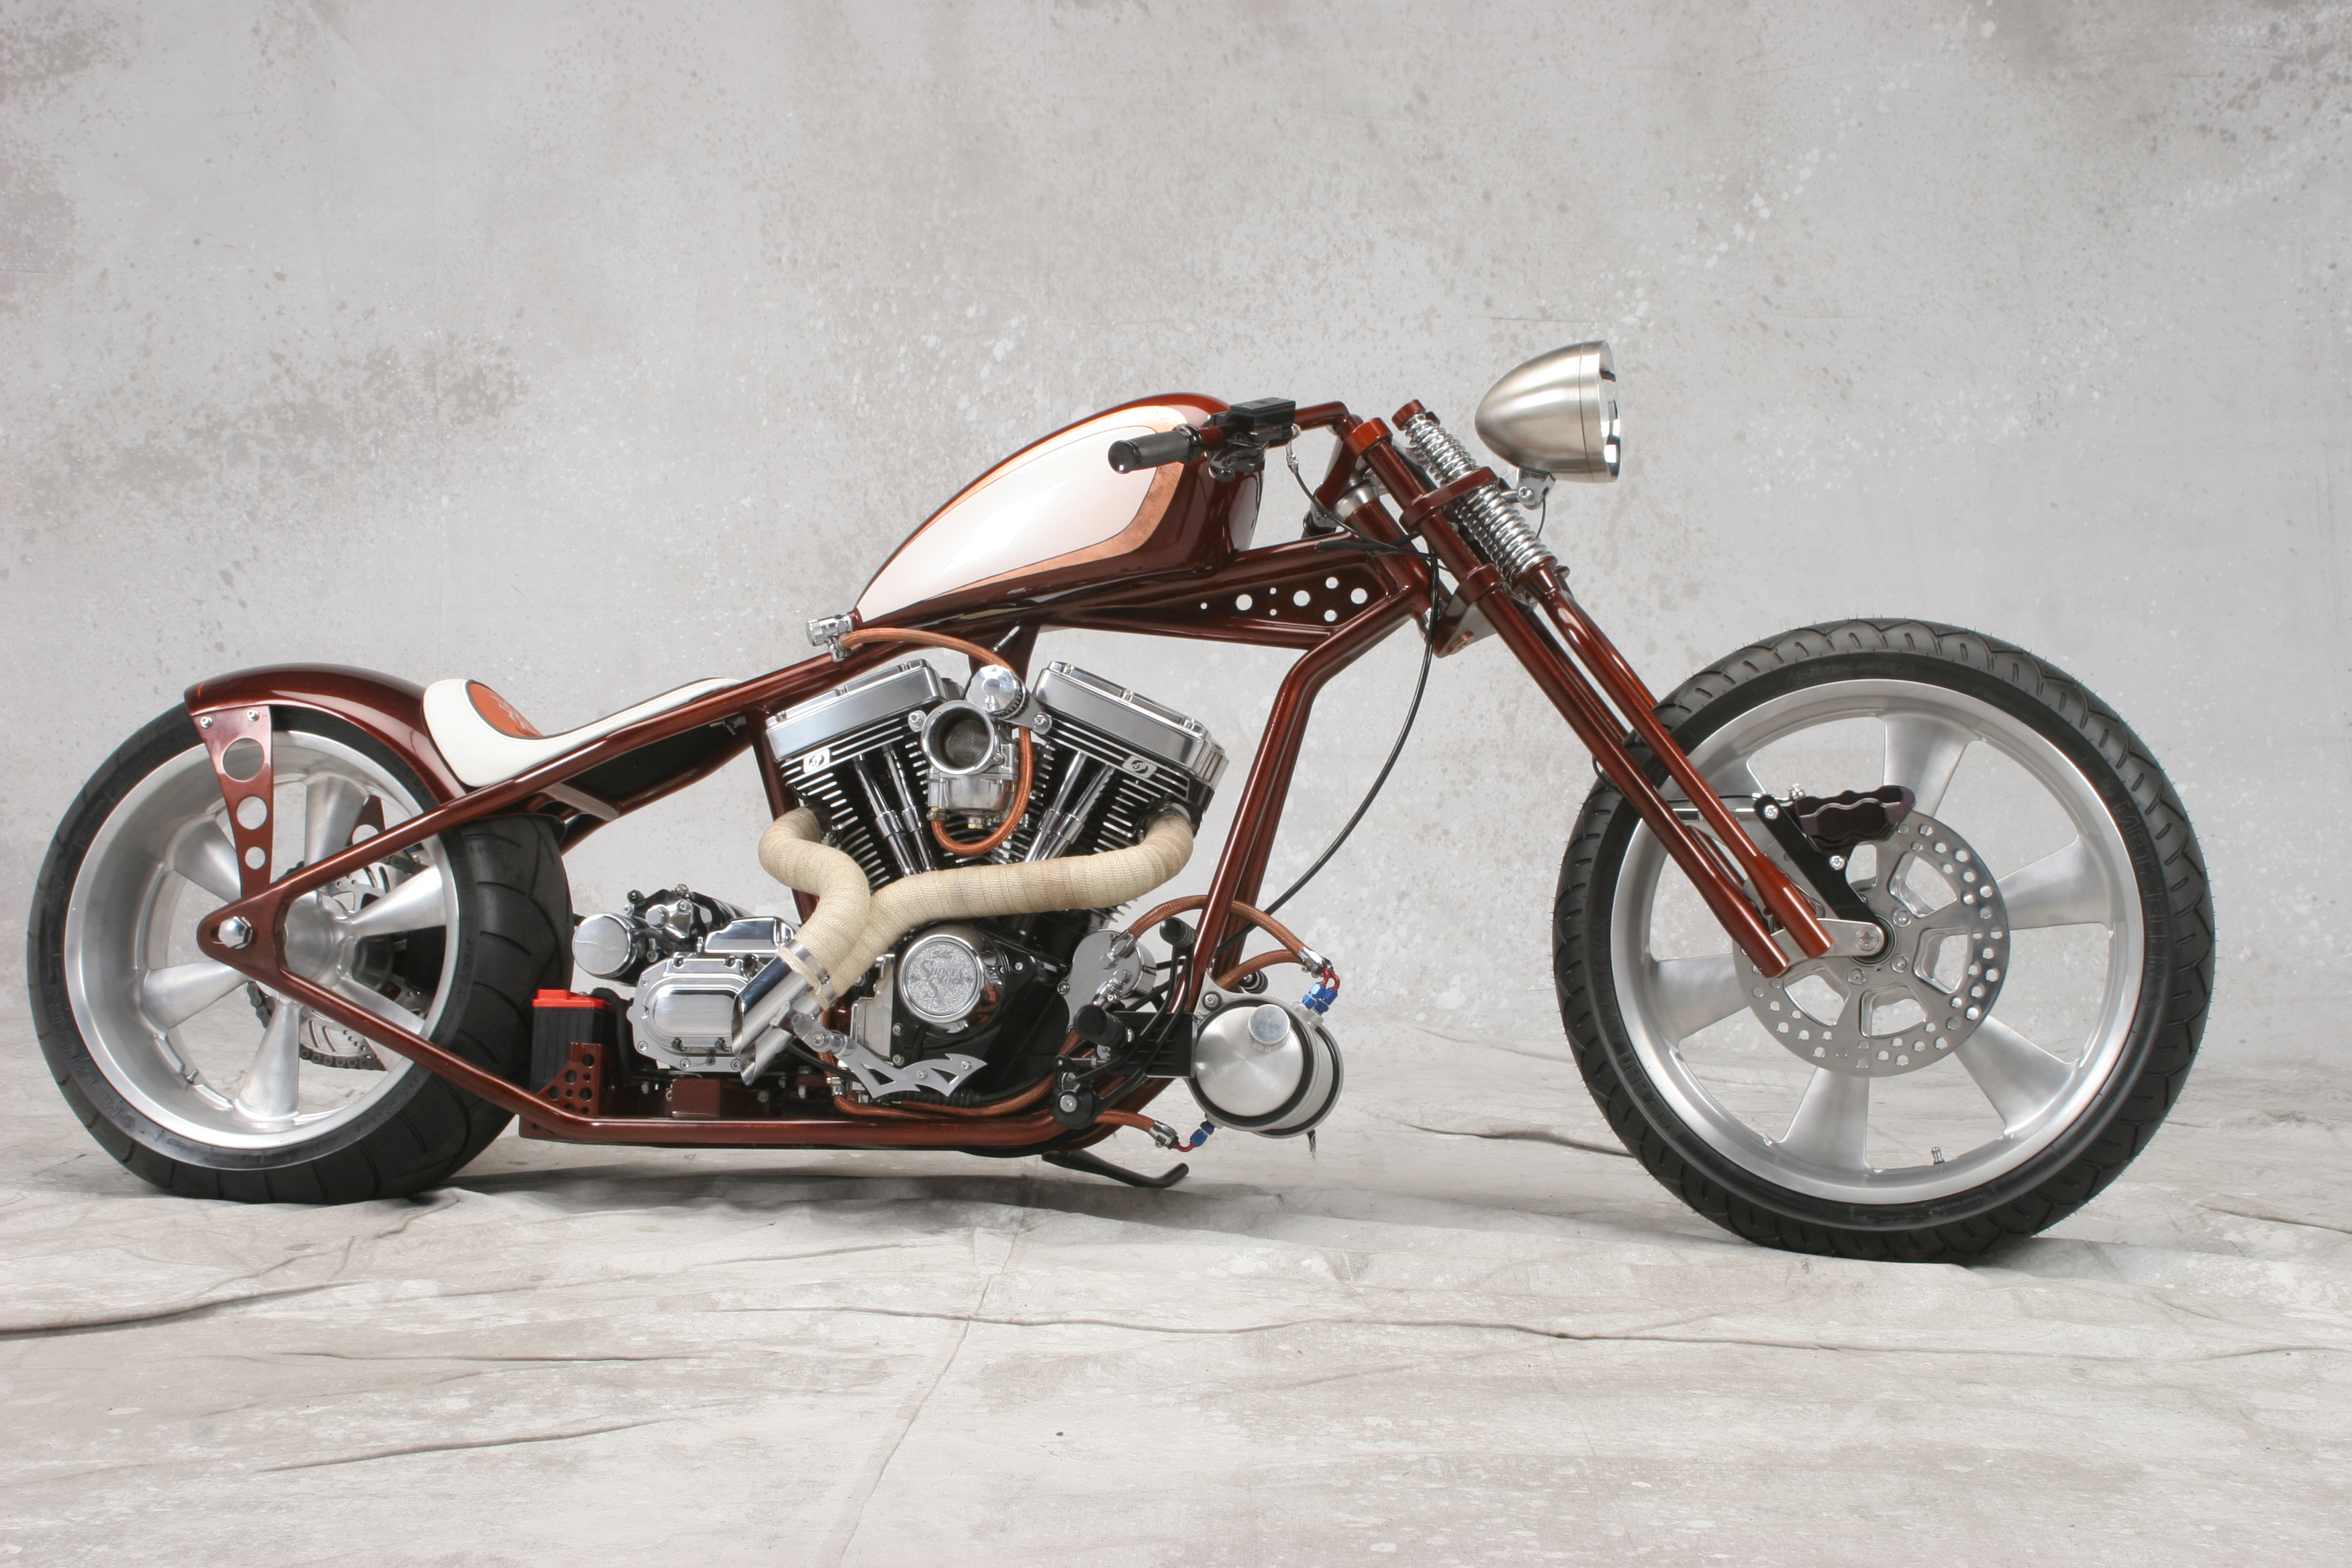 exotic cars customs motorcycles fast boats lucille guilty speed chopper choppers 2006 announces participation stunning festival amd sturgis prweb